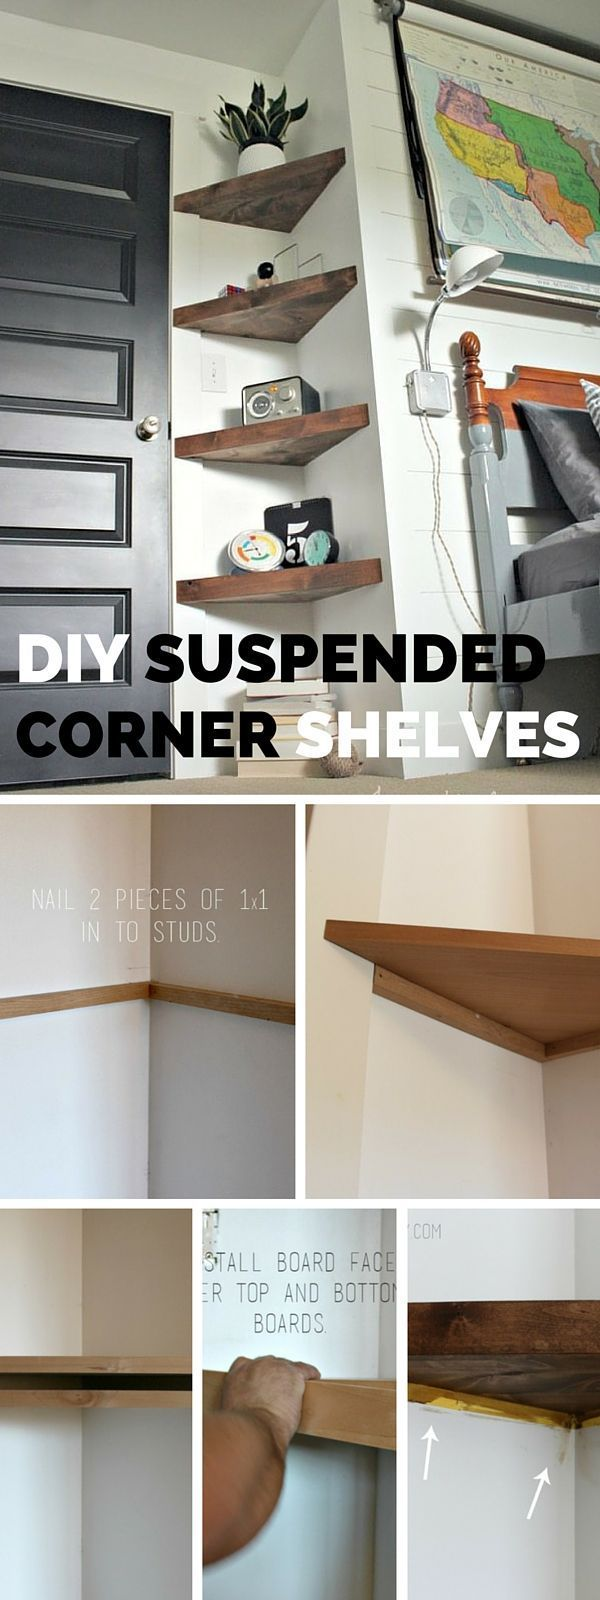 1418 best home decor diy images on pinterest diy home and projects awesome 12 simply genius diy storage solutions for a neat home by http